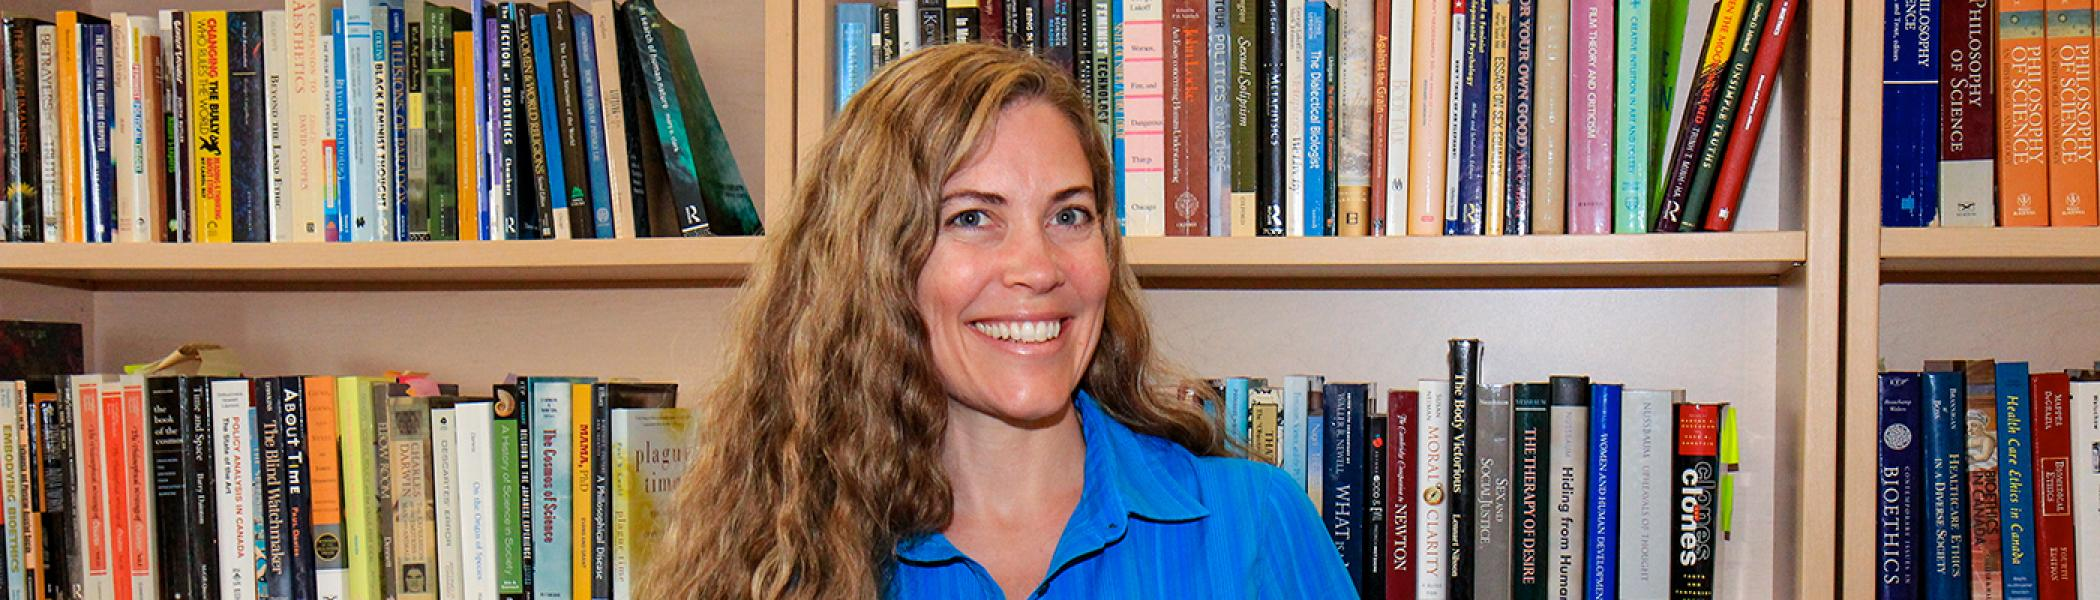 Dr. Moira Howes smiling at the camera in front of a bookcase of books